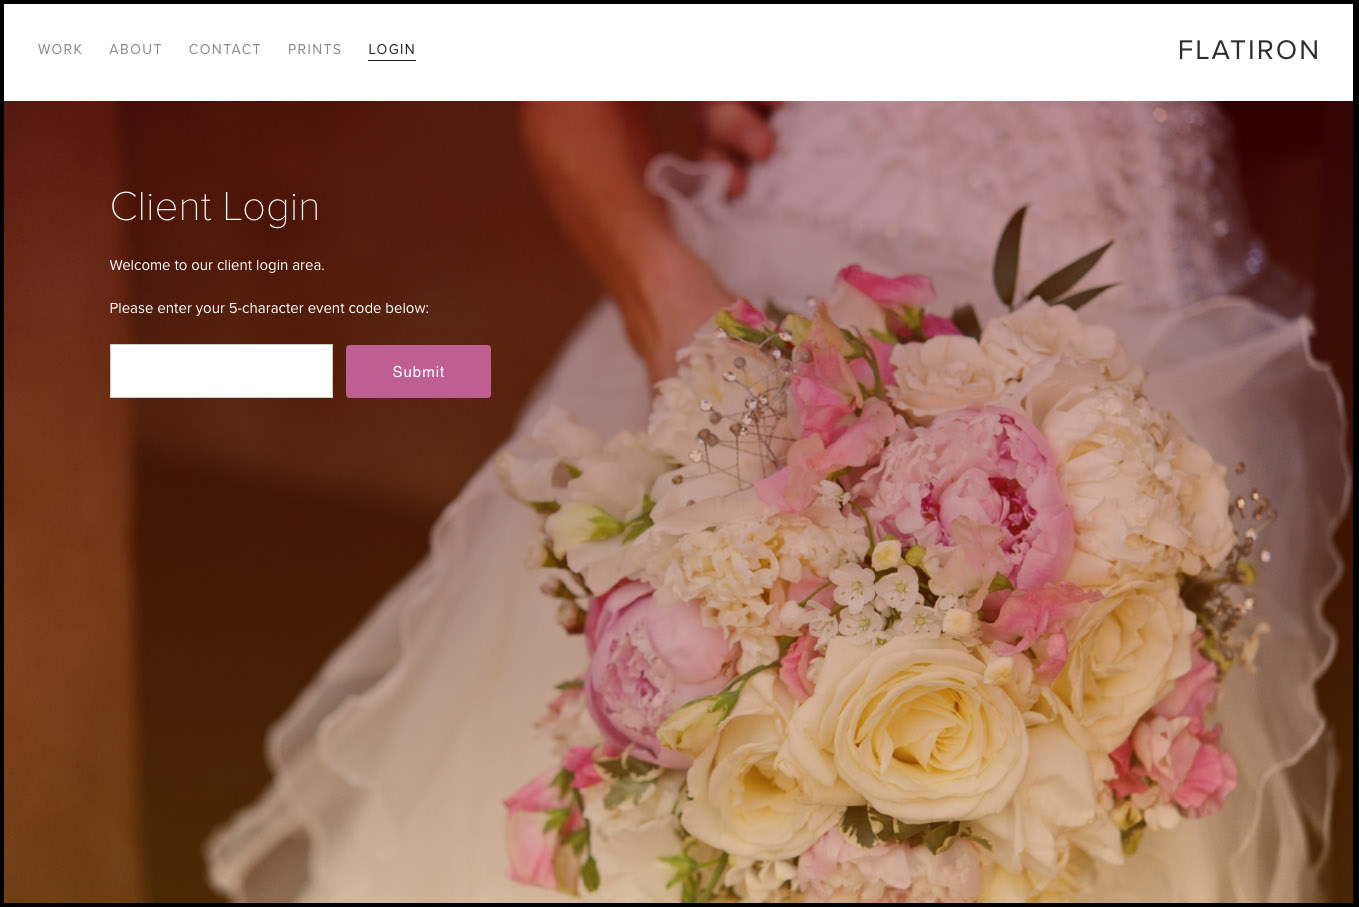 Page for Client Login